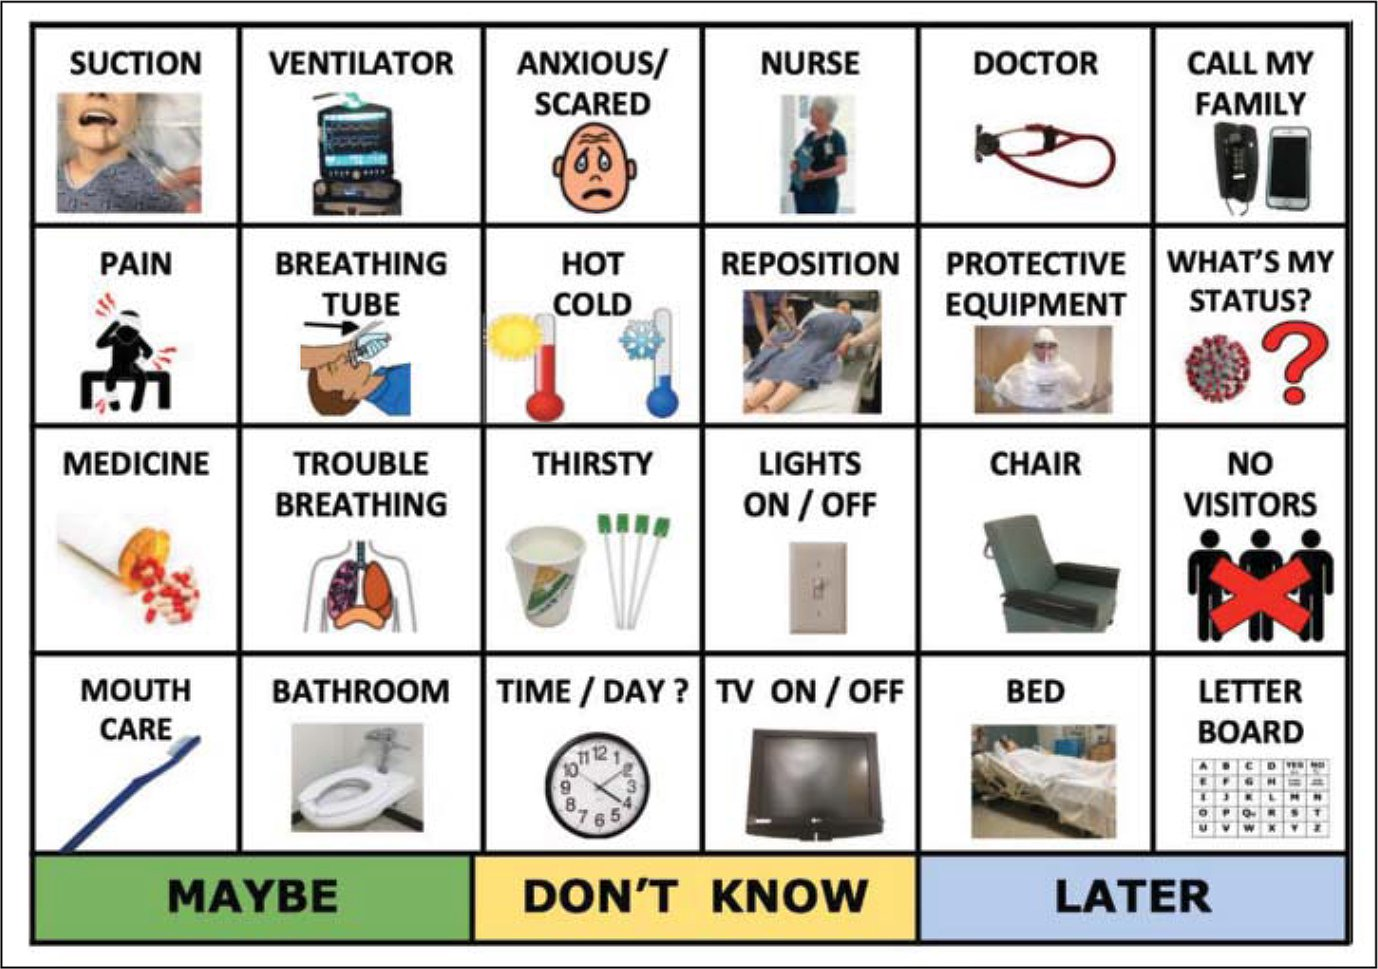 Basic needs communication board.From Patient-Provider Communication (2020, in the public domain; permission is not required; https://www.patientprovidercommunication.org/covid-19-free-tools).